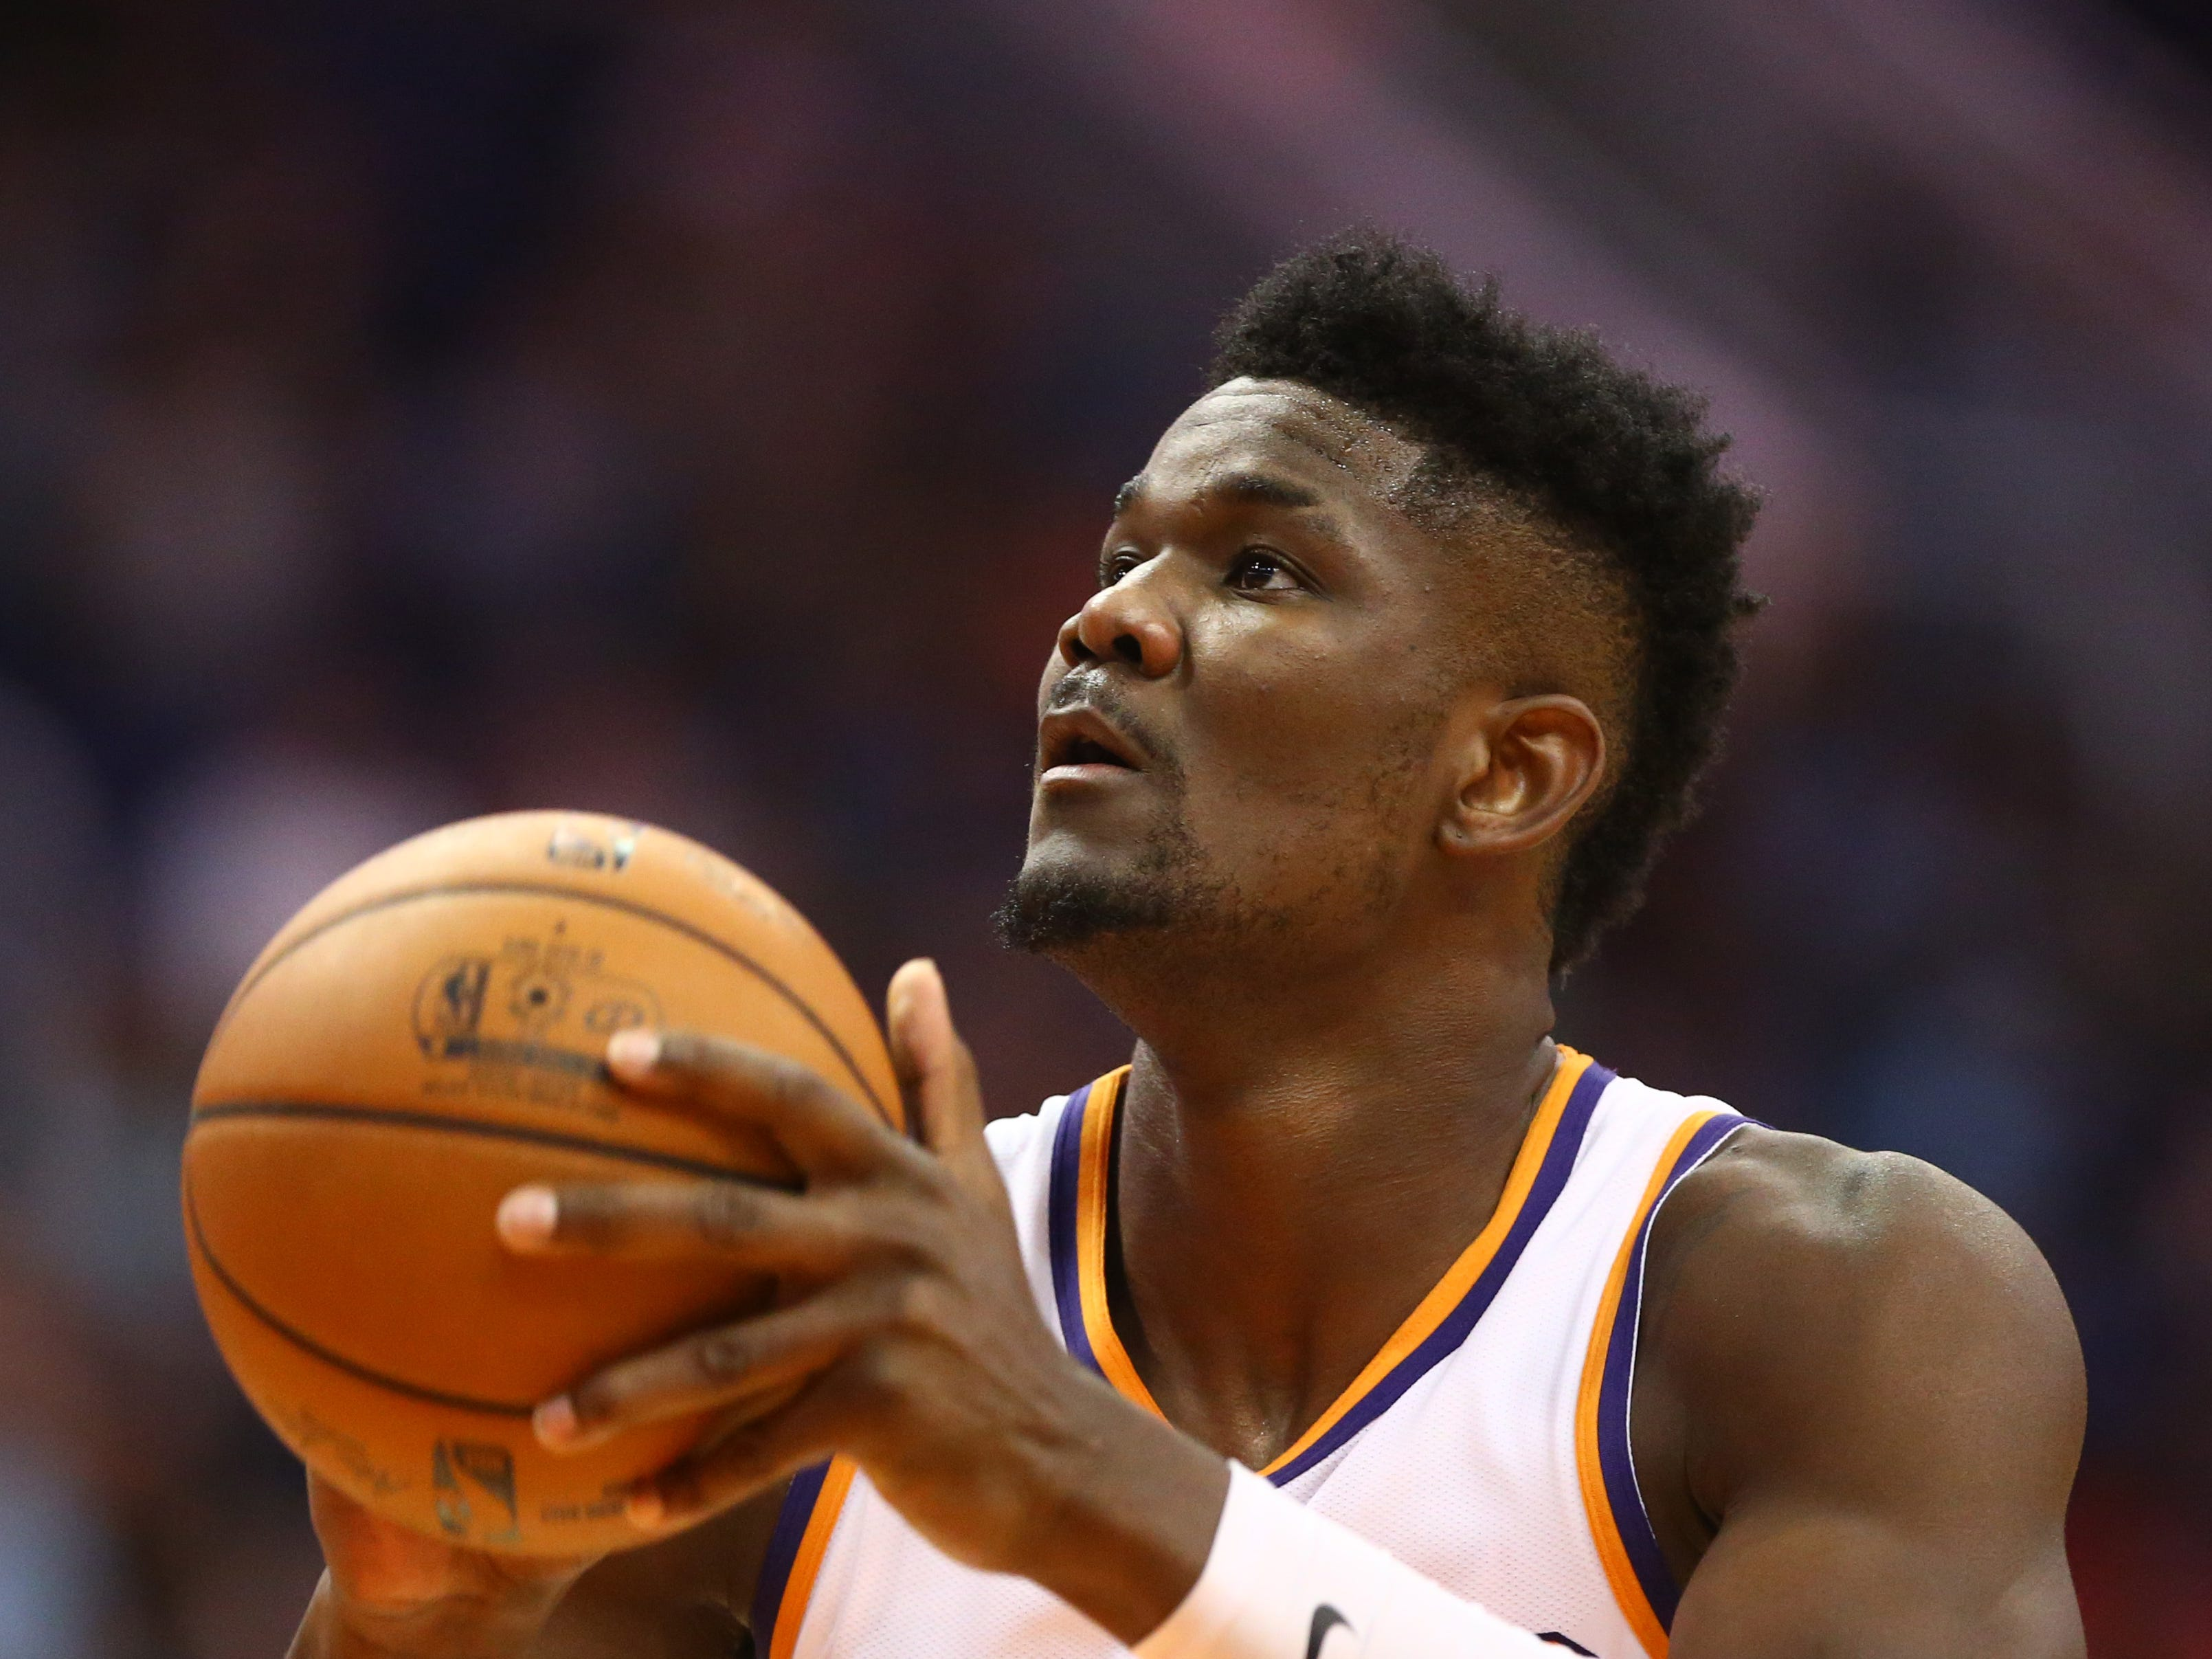 Phoenix Suns center Deandre Ayton shoots a free throw against the Portland Trail Blazers during a preseason game at Talking Stick Resort Arena on Oct. 5, 2018, in Phoenix, Ariz.